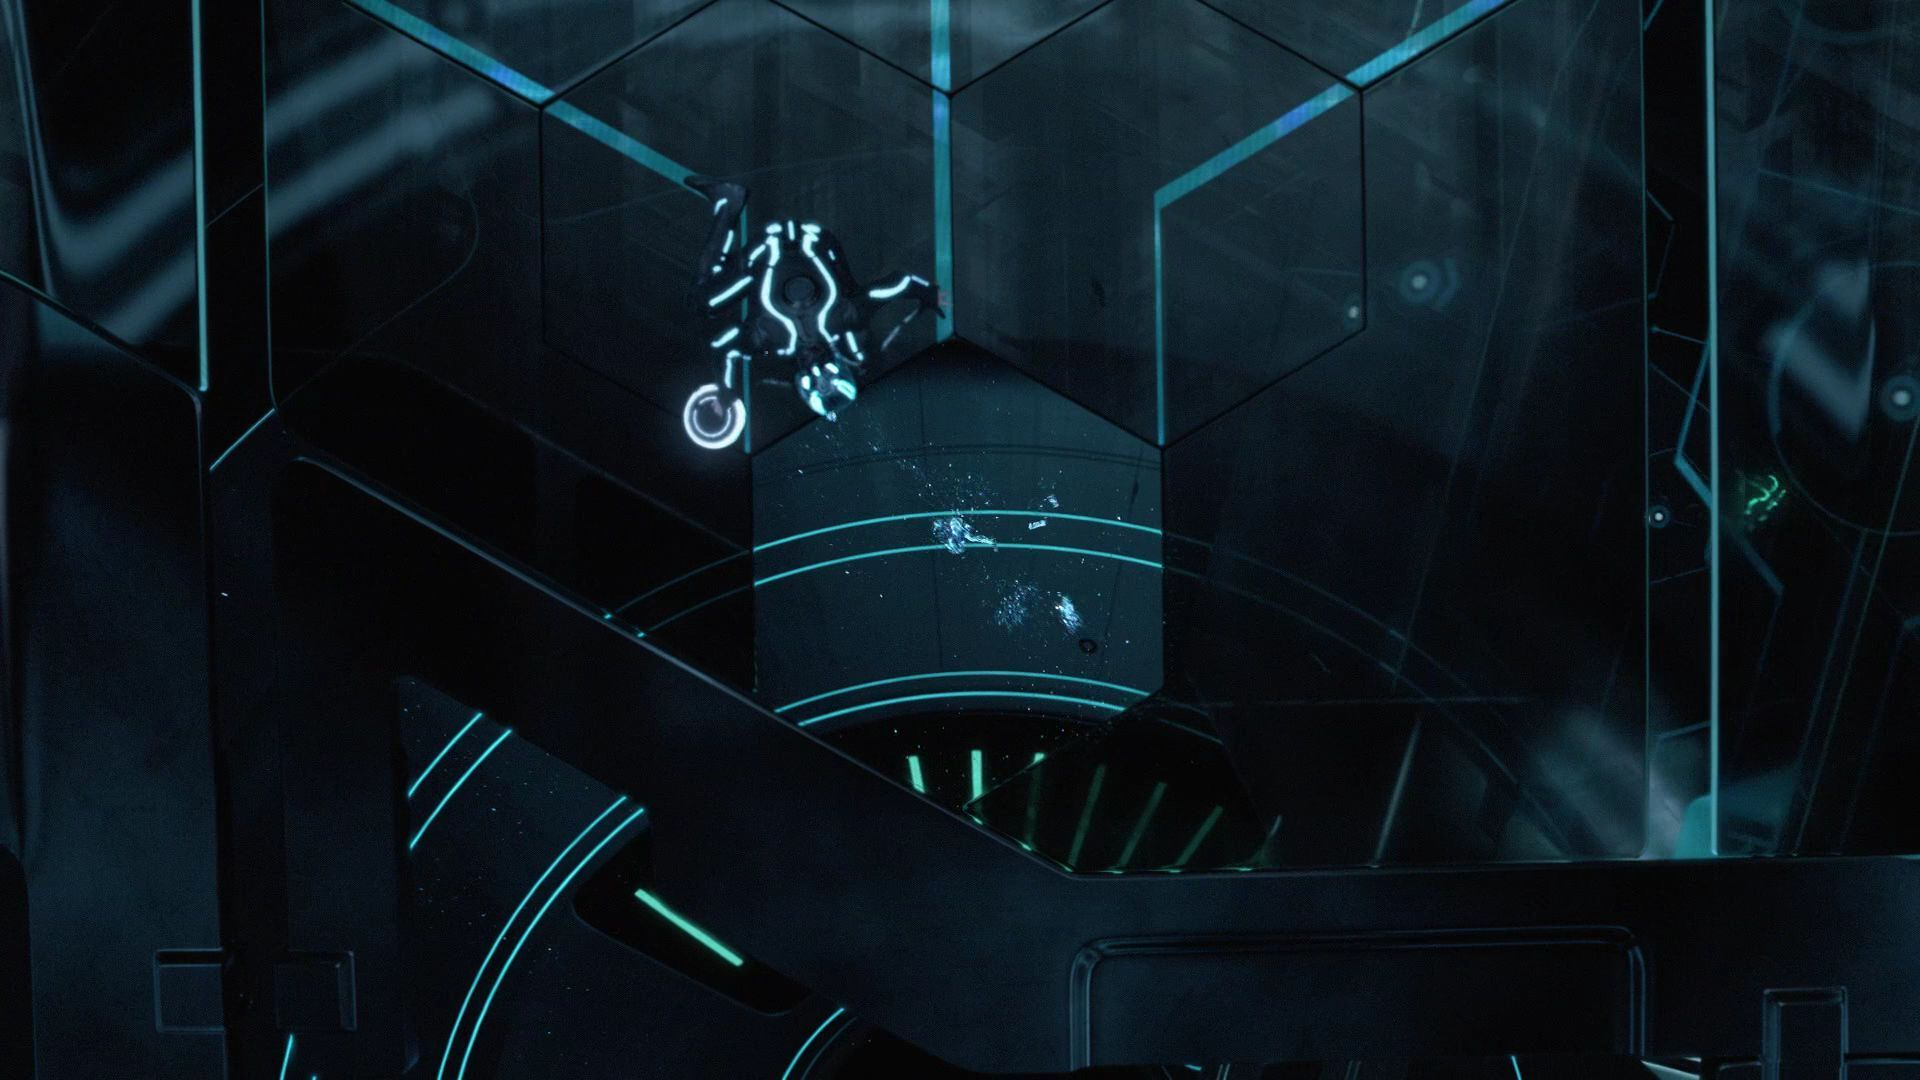 Tron legacy tron legacy image 20511193 fanpop for Legacy house